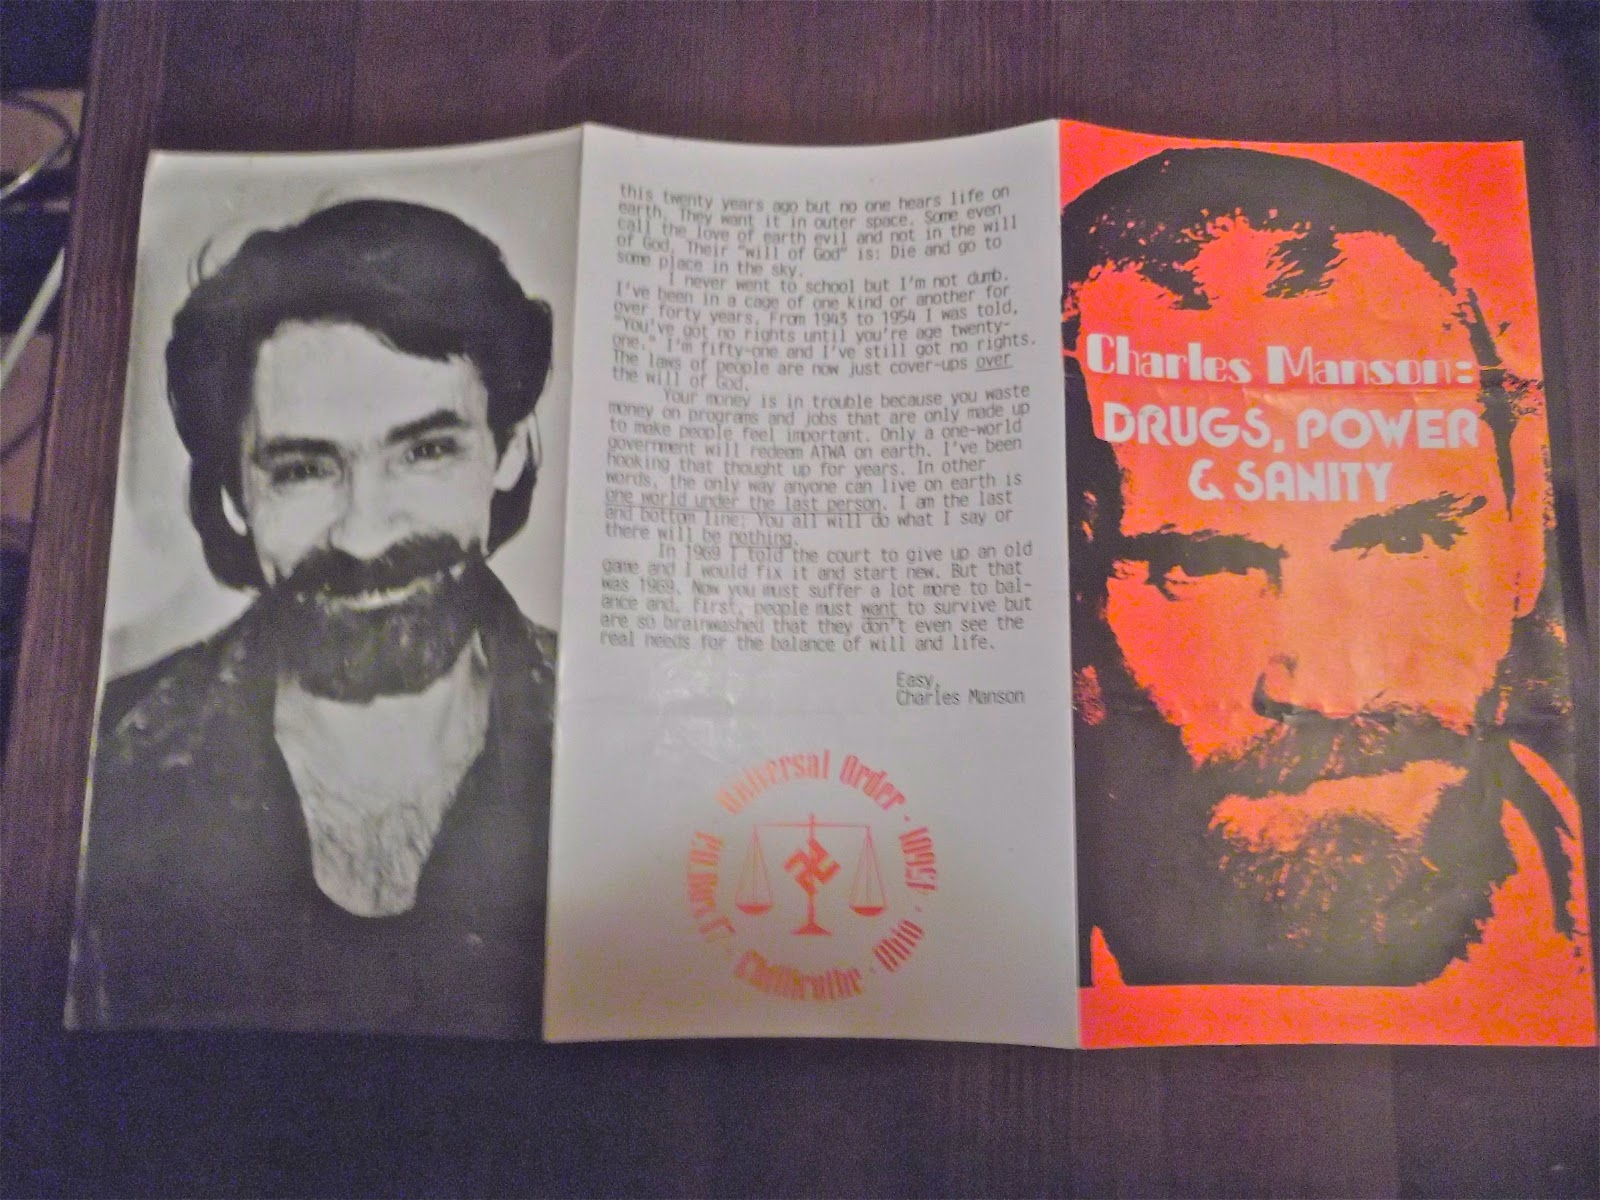 charles manson criminology paper Looking for the perfect charles manson you can stop your search and come to etsy, the marketplace where sellers around the world express their creativity through handmade and vintage goods with etsy, buyers like you can find hundreds or thousands of unique, affordable charles manson let's get started.